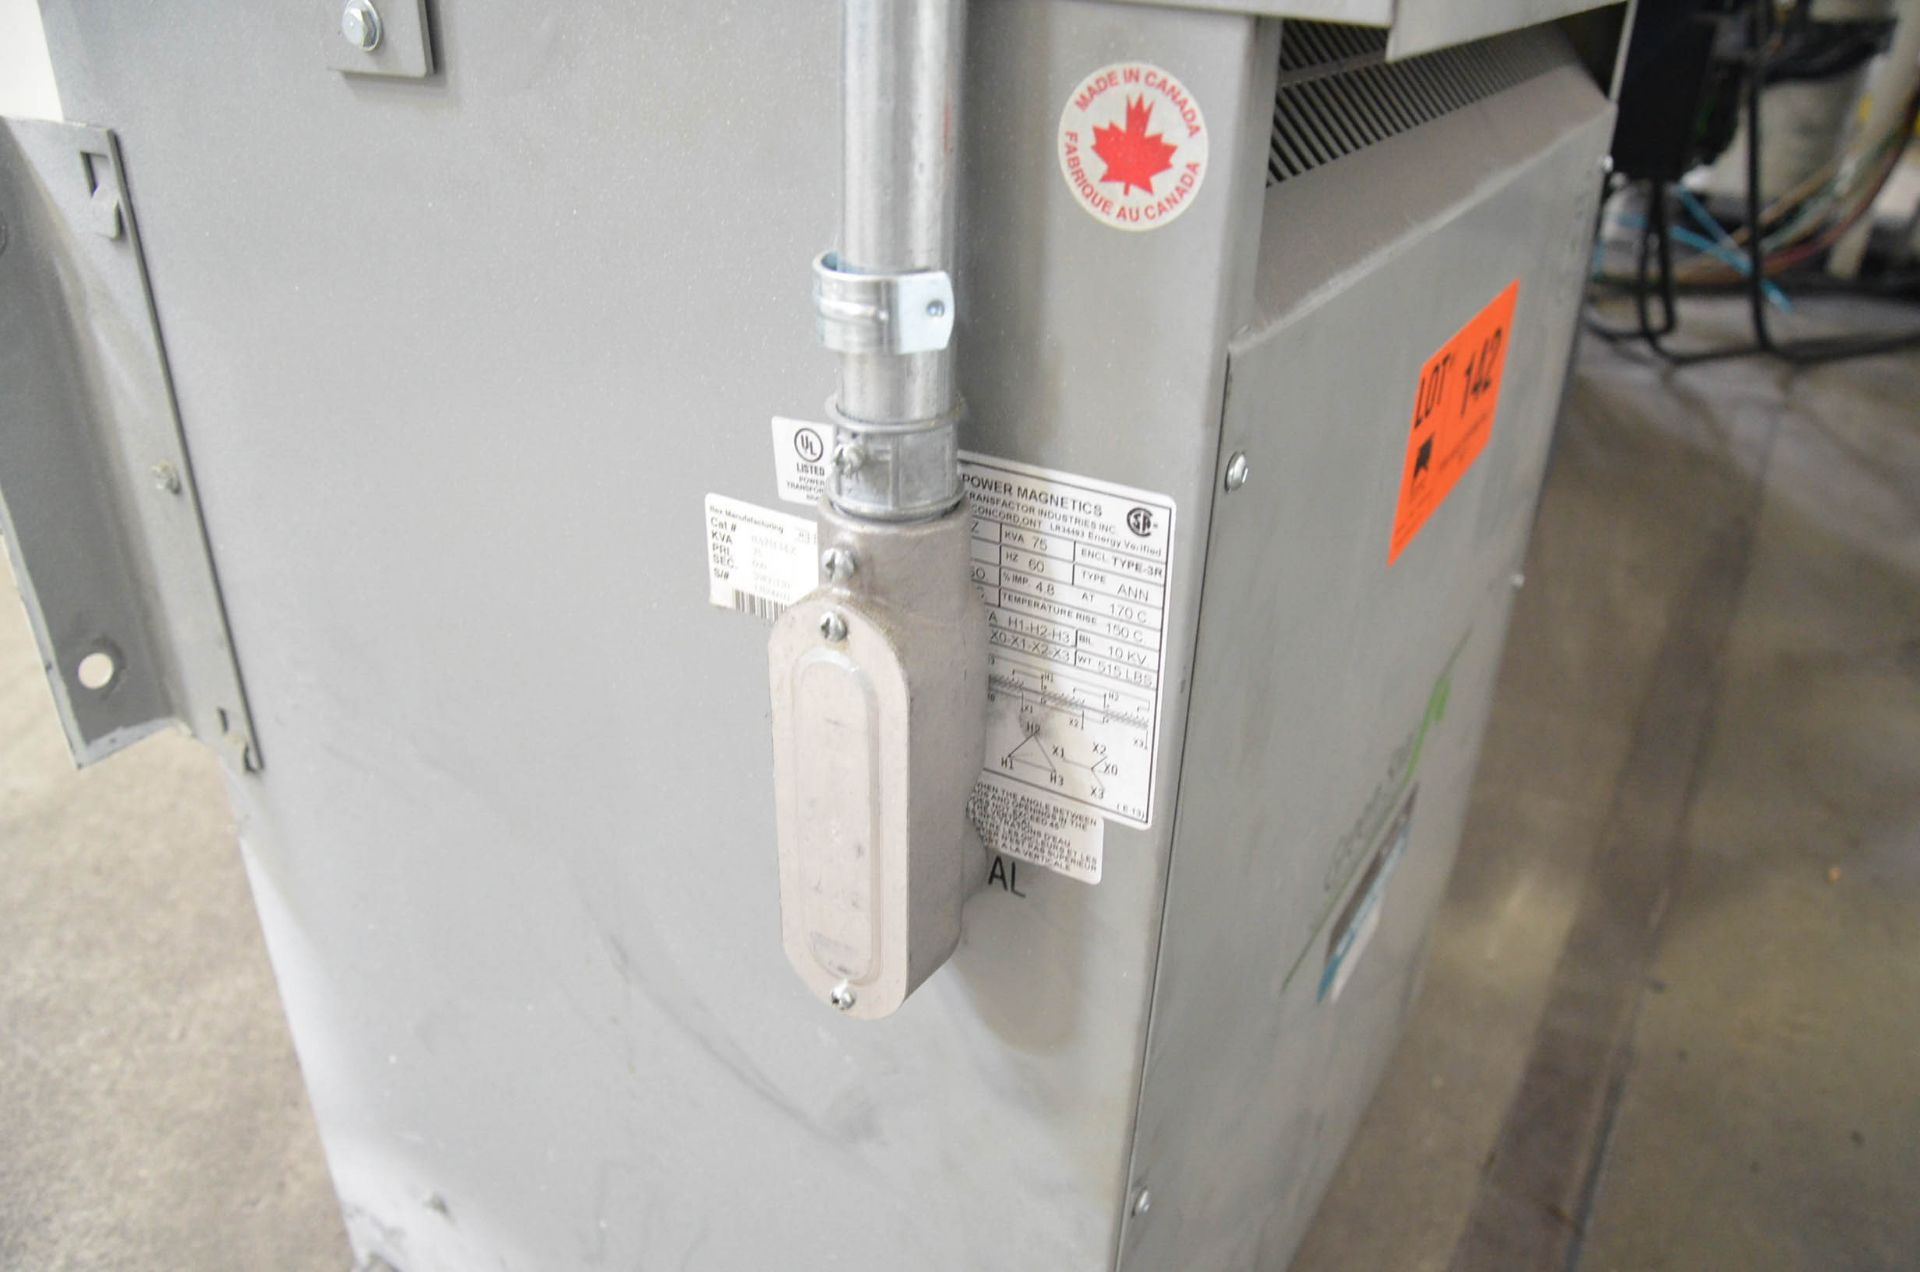 REX 75KVA/600-208V/3PH/60HZ TRANSFORMER (CI) [RIGGING FEES FOR LOT #142 - $50 USD PLUS APPLICABLE - Image 2 of 2